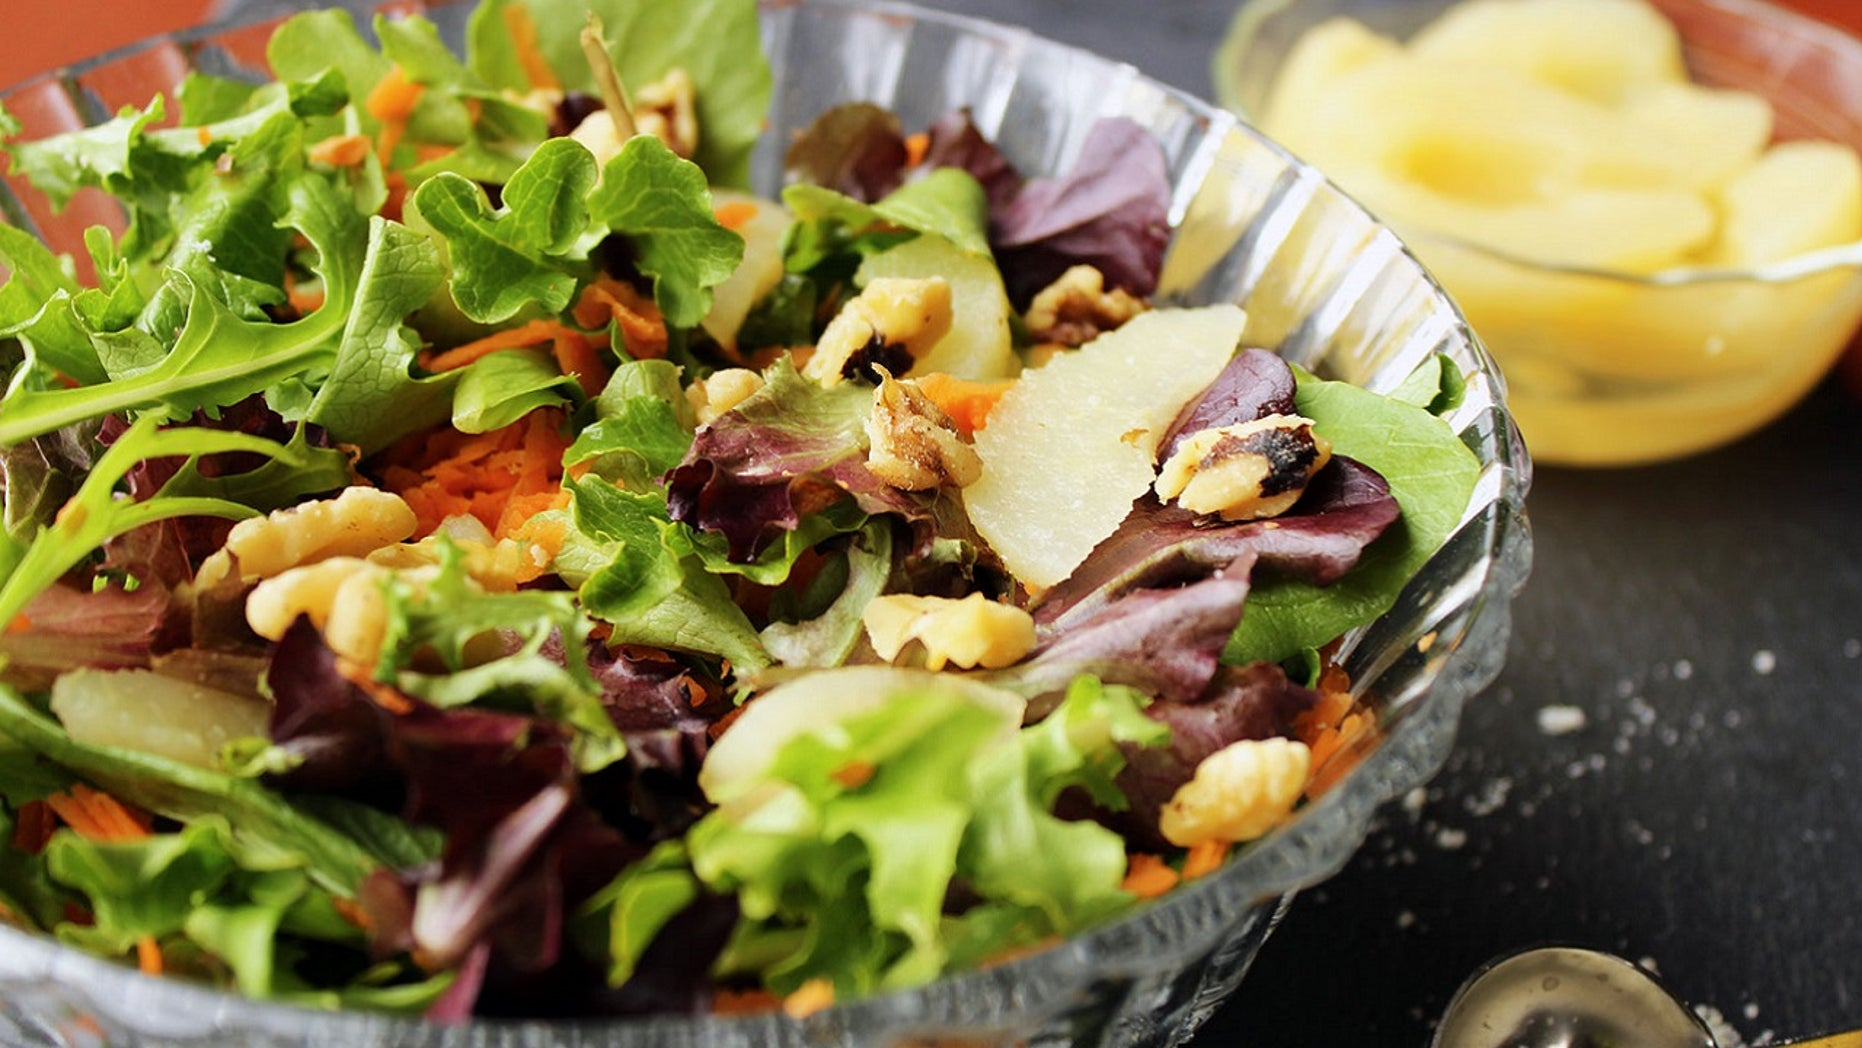 Long lines for salads in New York emanate commotion in a days after eat healthy New Year's resolutions.